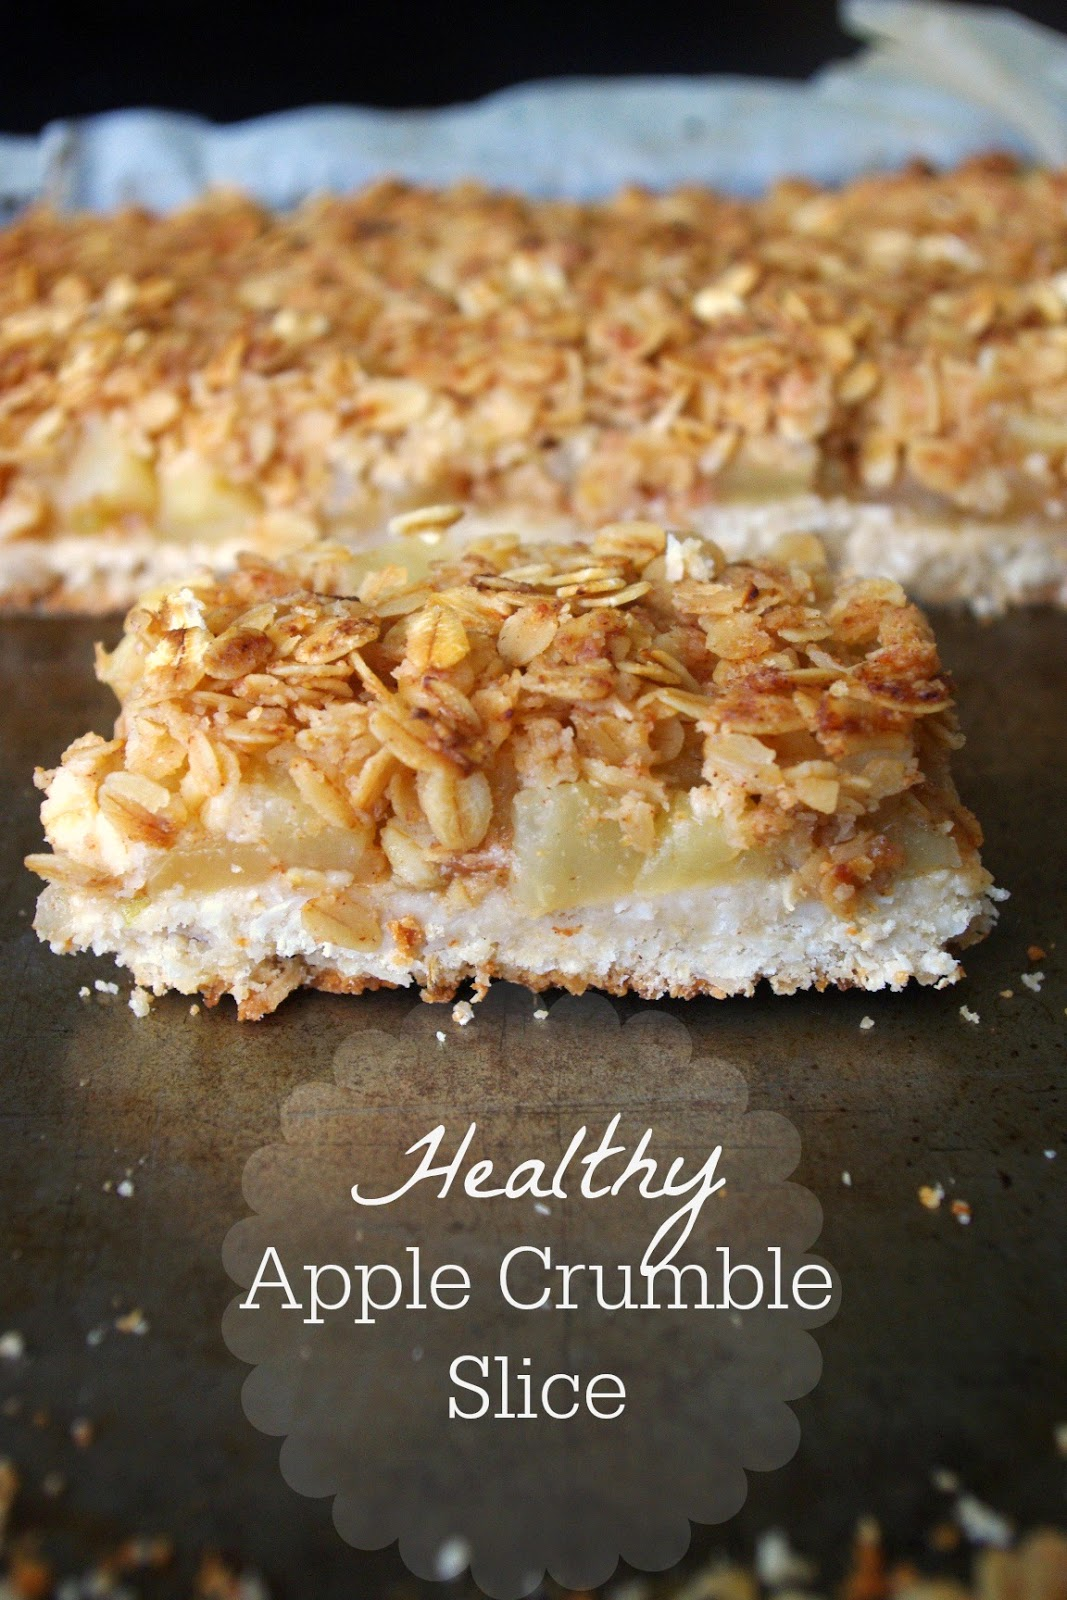 Healthy apple crumble slice